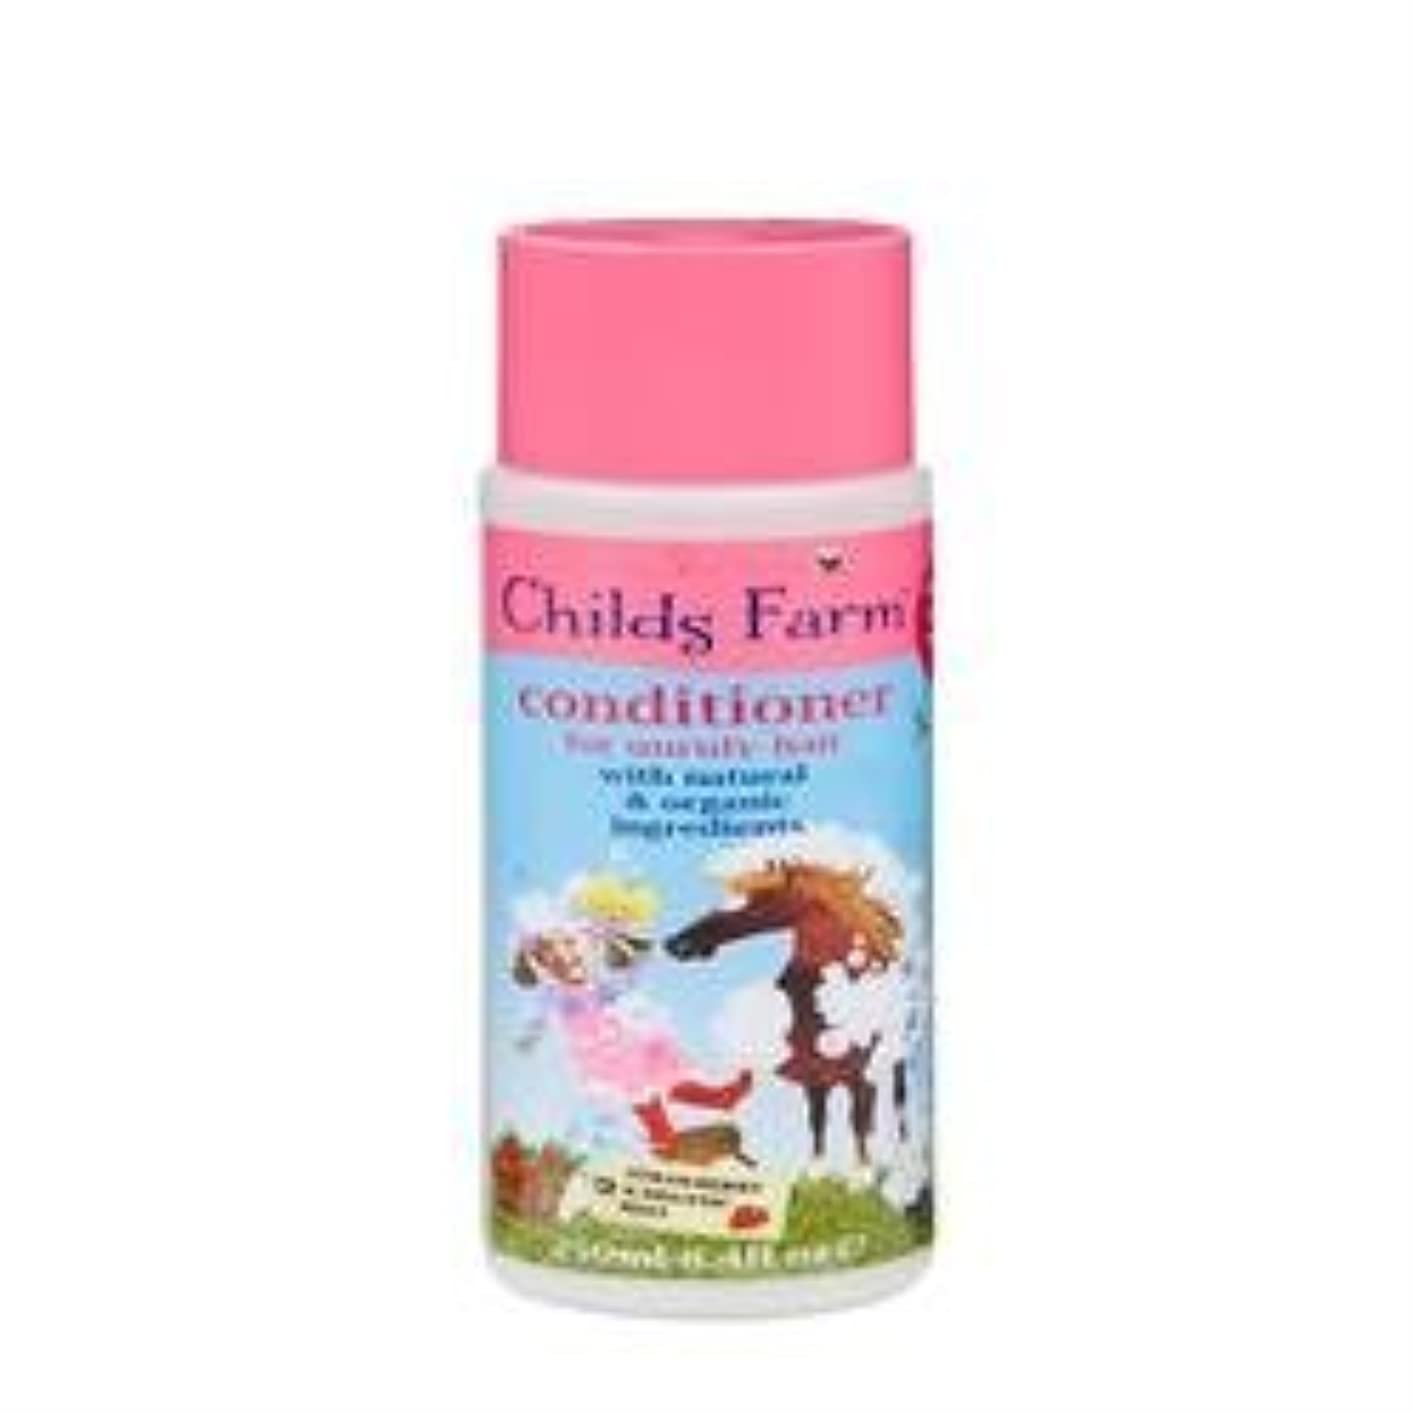 無心に対処する経営者Conditioner for Unruly Hair (250ml) x 6 Pack by Childs Farm [並行輸入品]